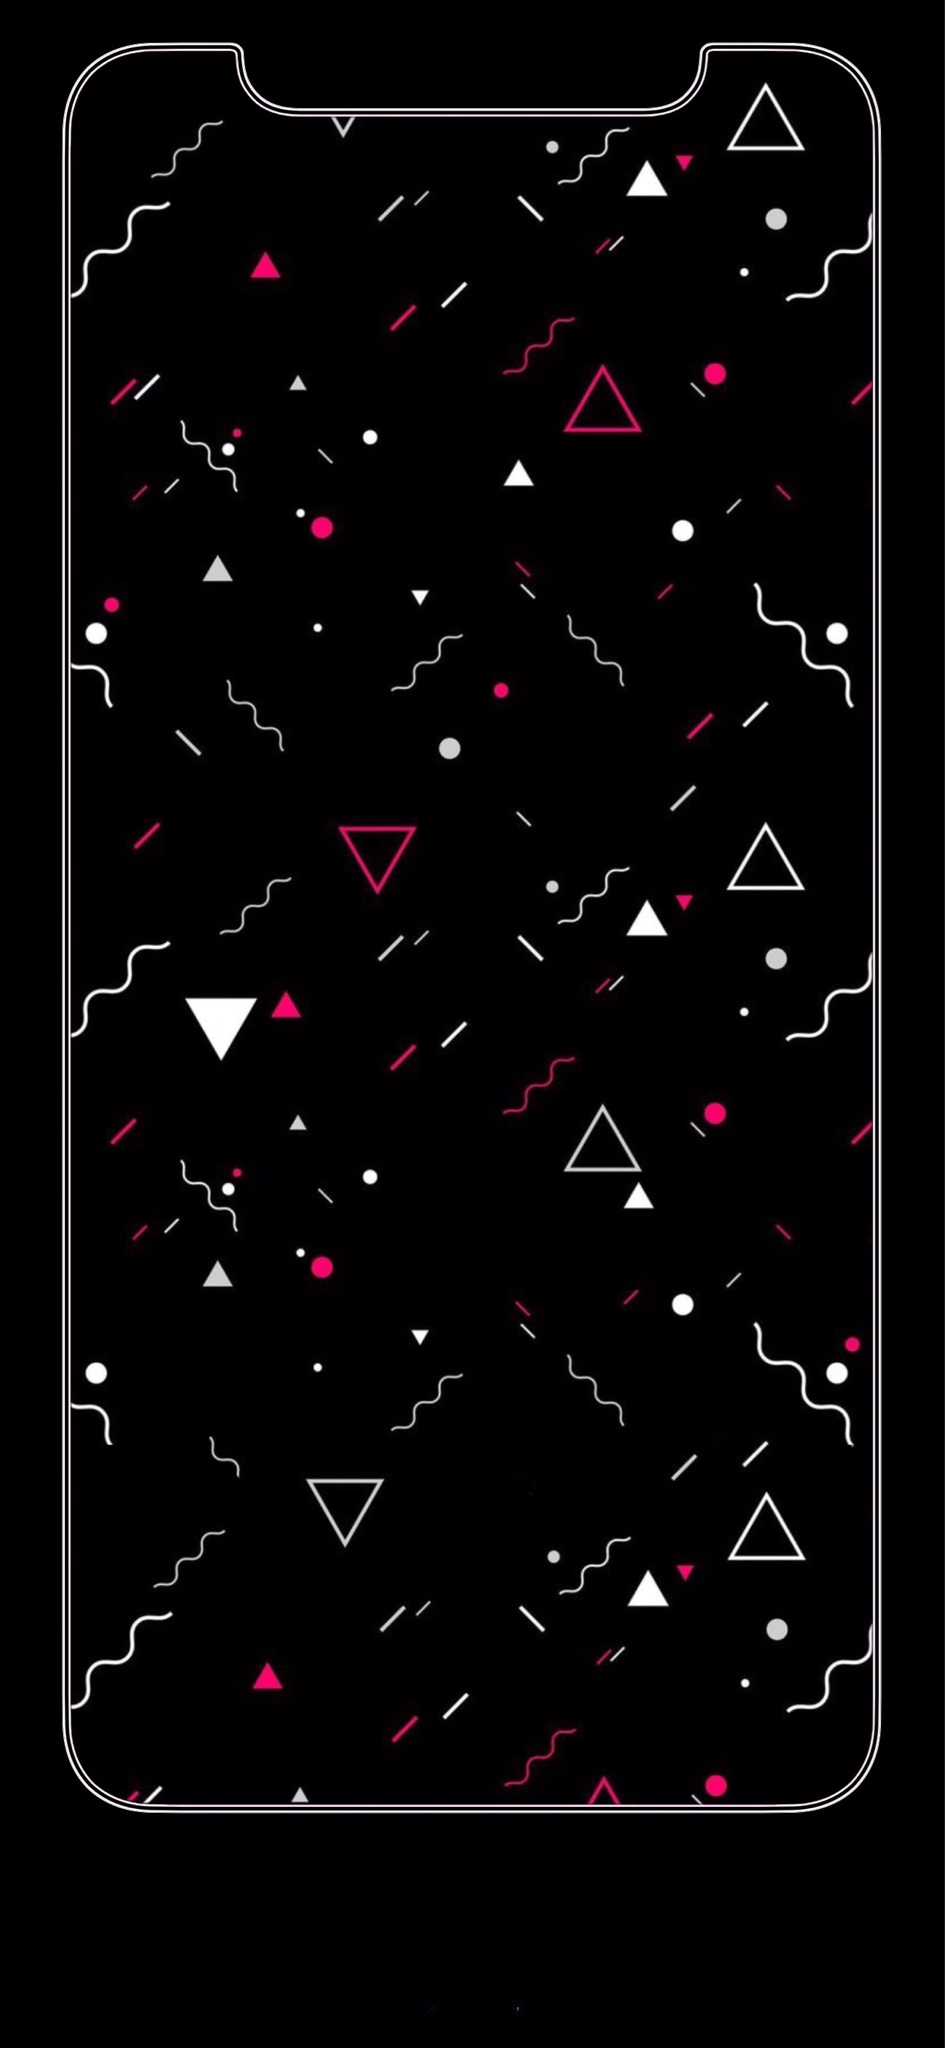 The Iphone X Xs Wallpaper Thread Page 37 Iphone Ipad Ipod Forums At Imore Com